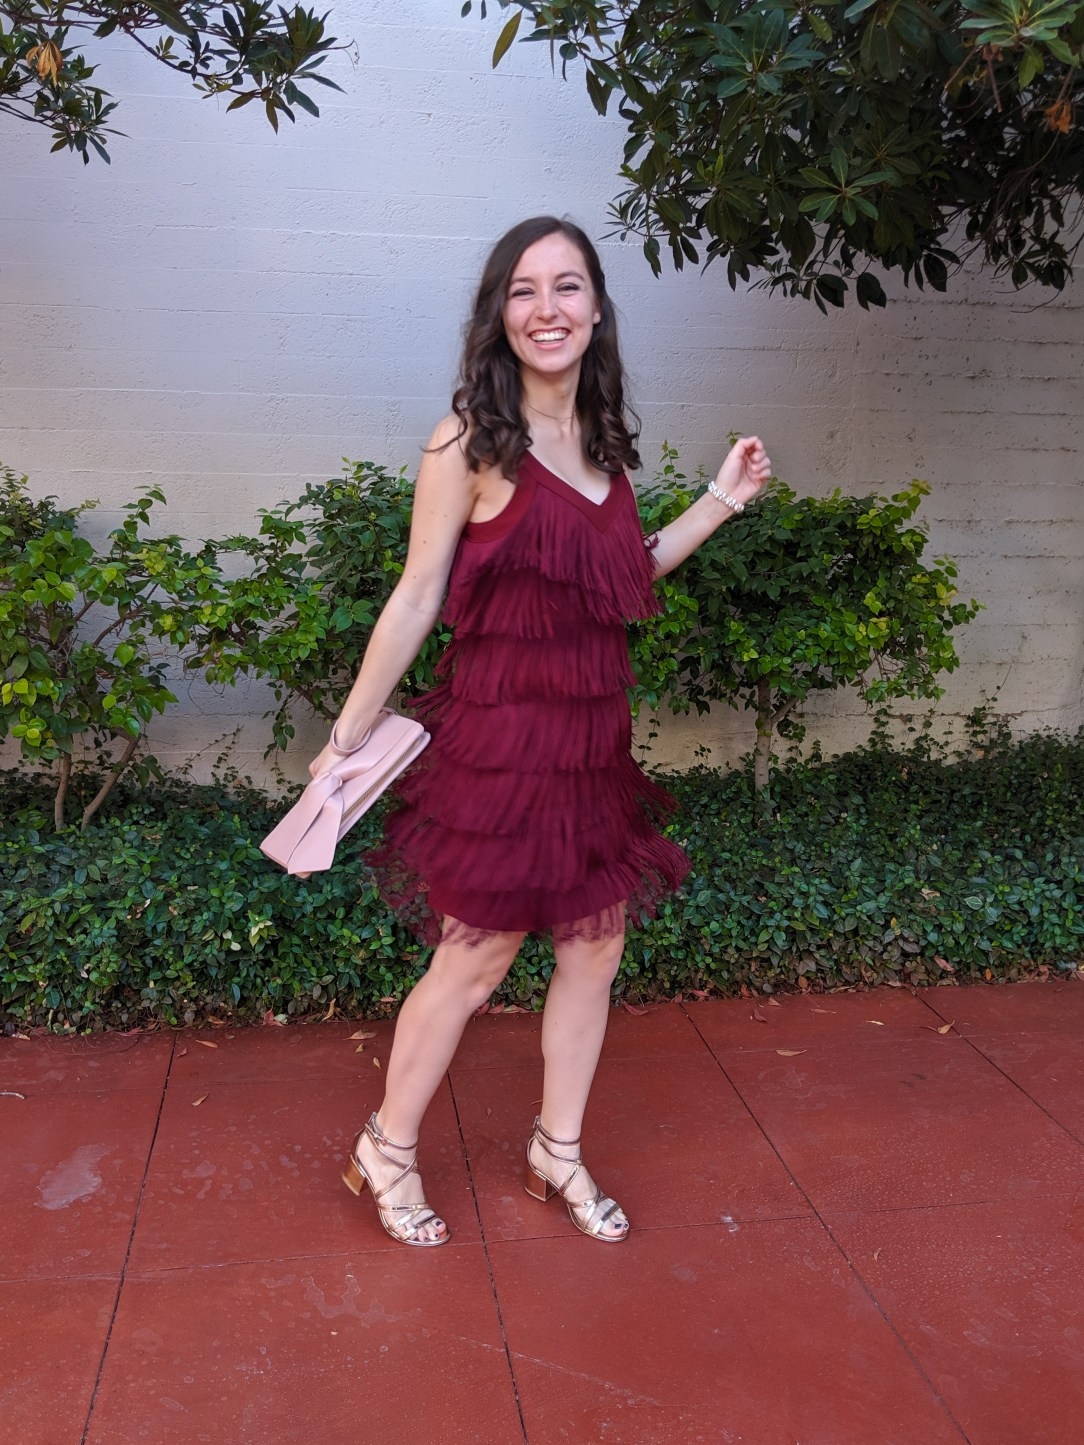 dancing outfit, fringe dress, funny story, wedding guest